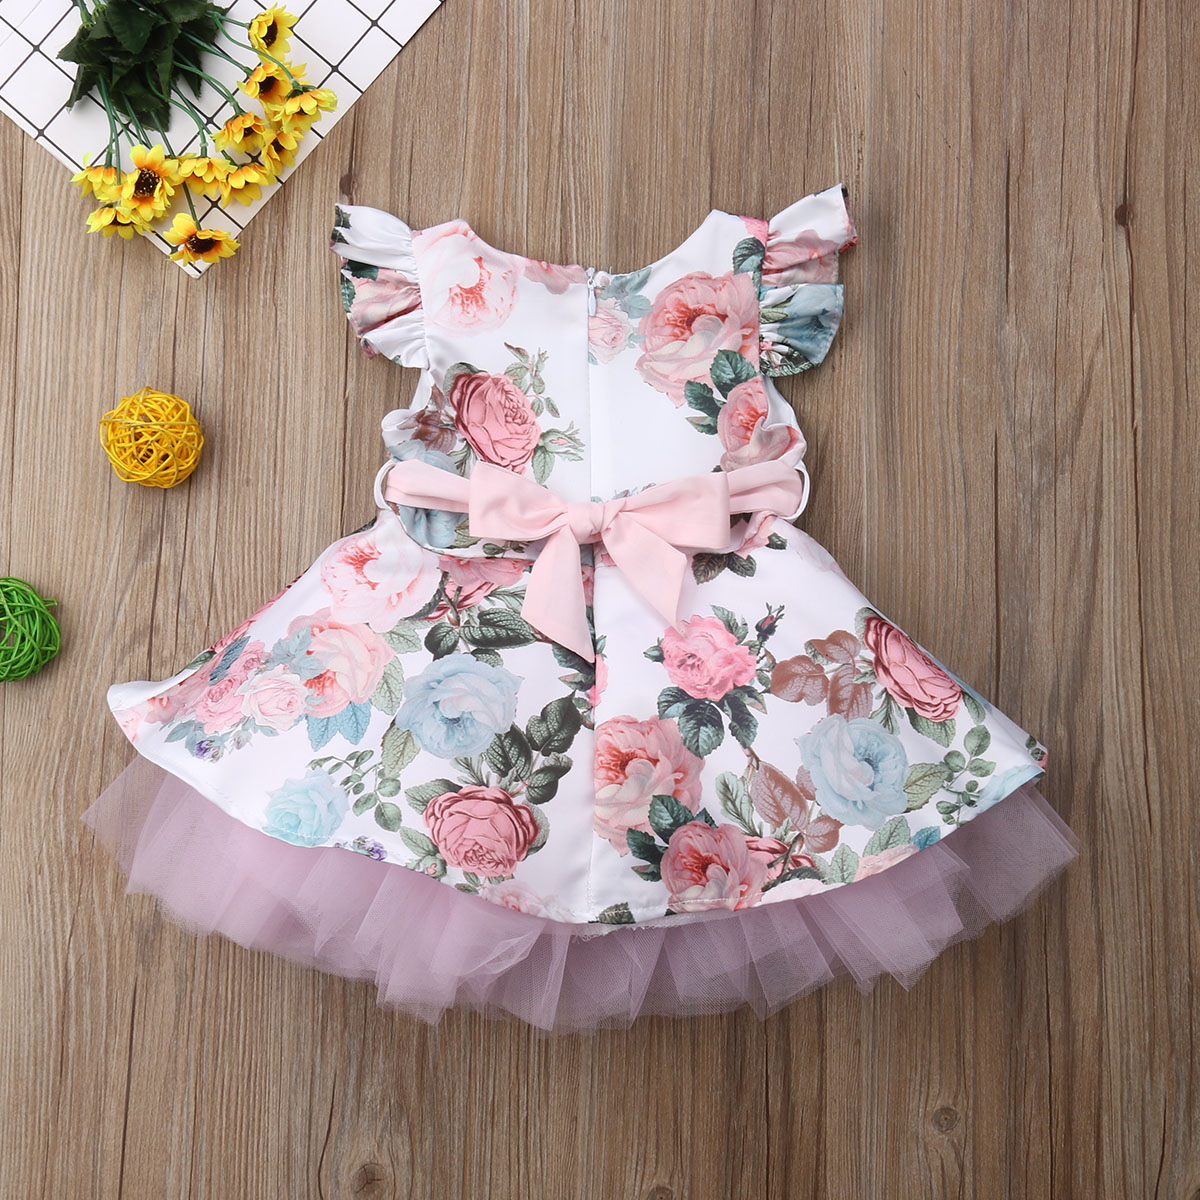 Princess Toddler Newborn Baby Girls Dress Flower Lace Tutu Party Wedding Birthday Dress For Girls Summer Baby Girl Clothing(China)